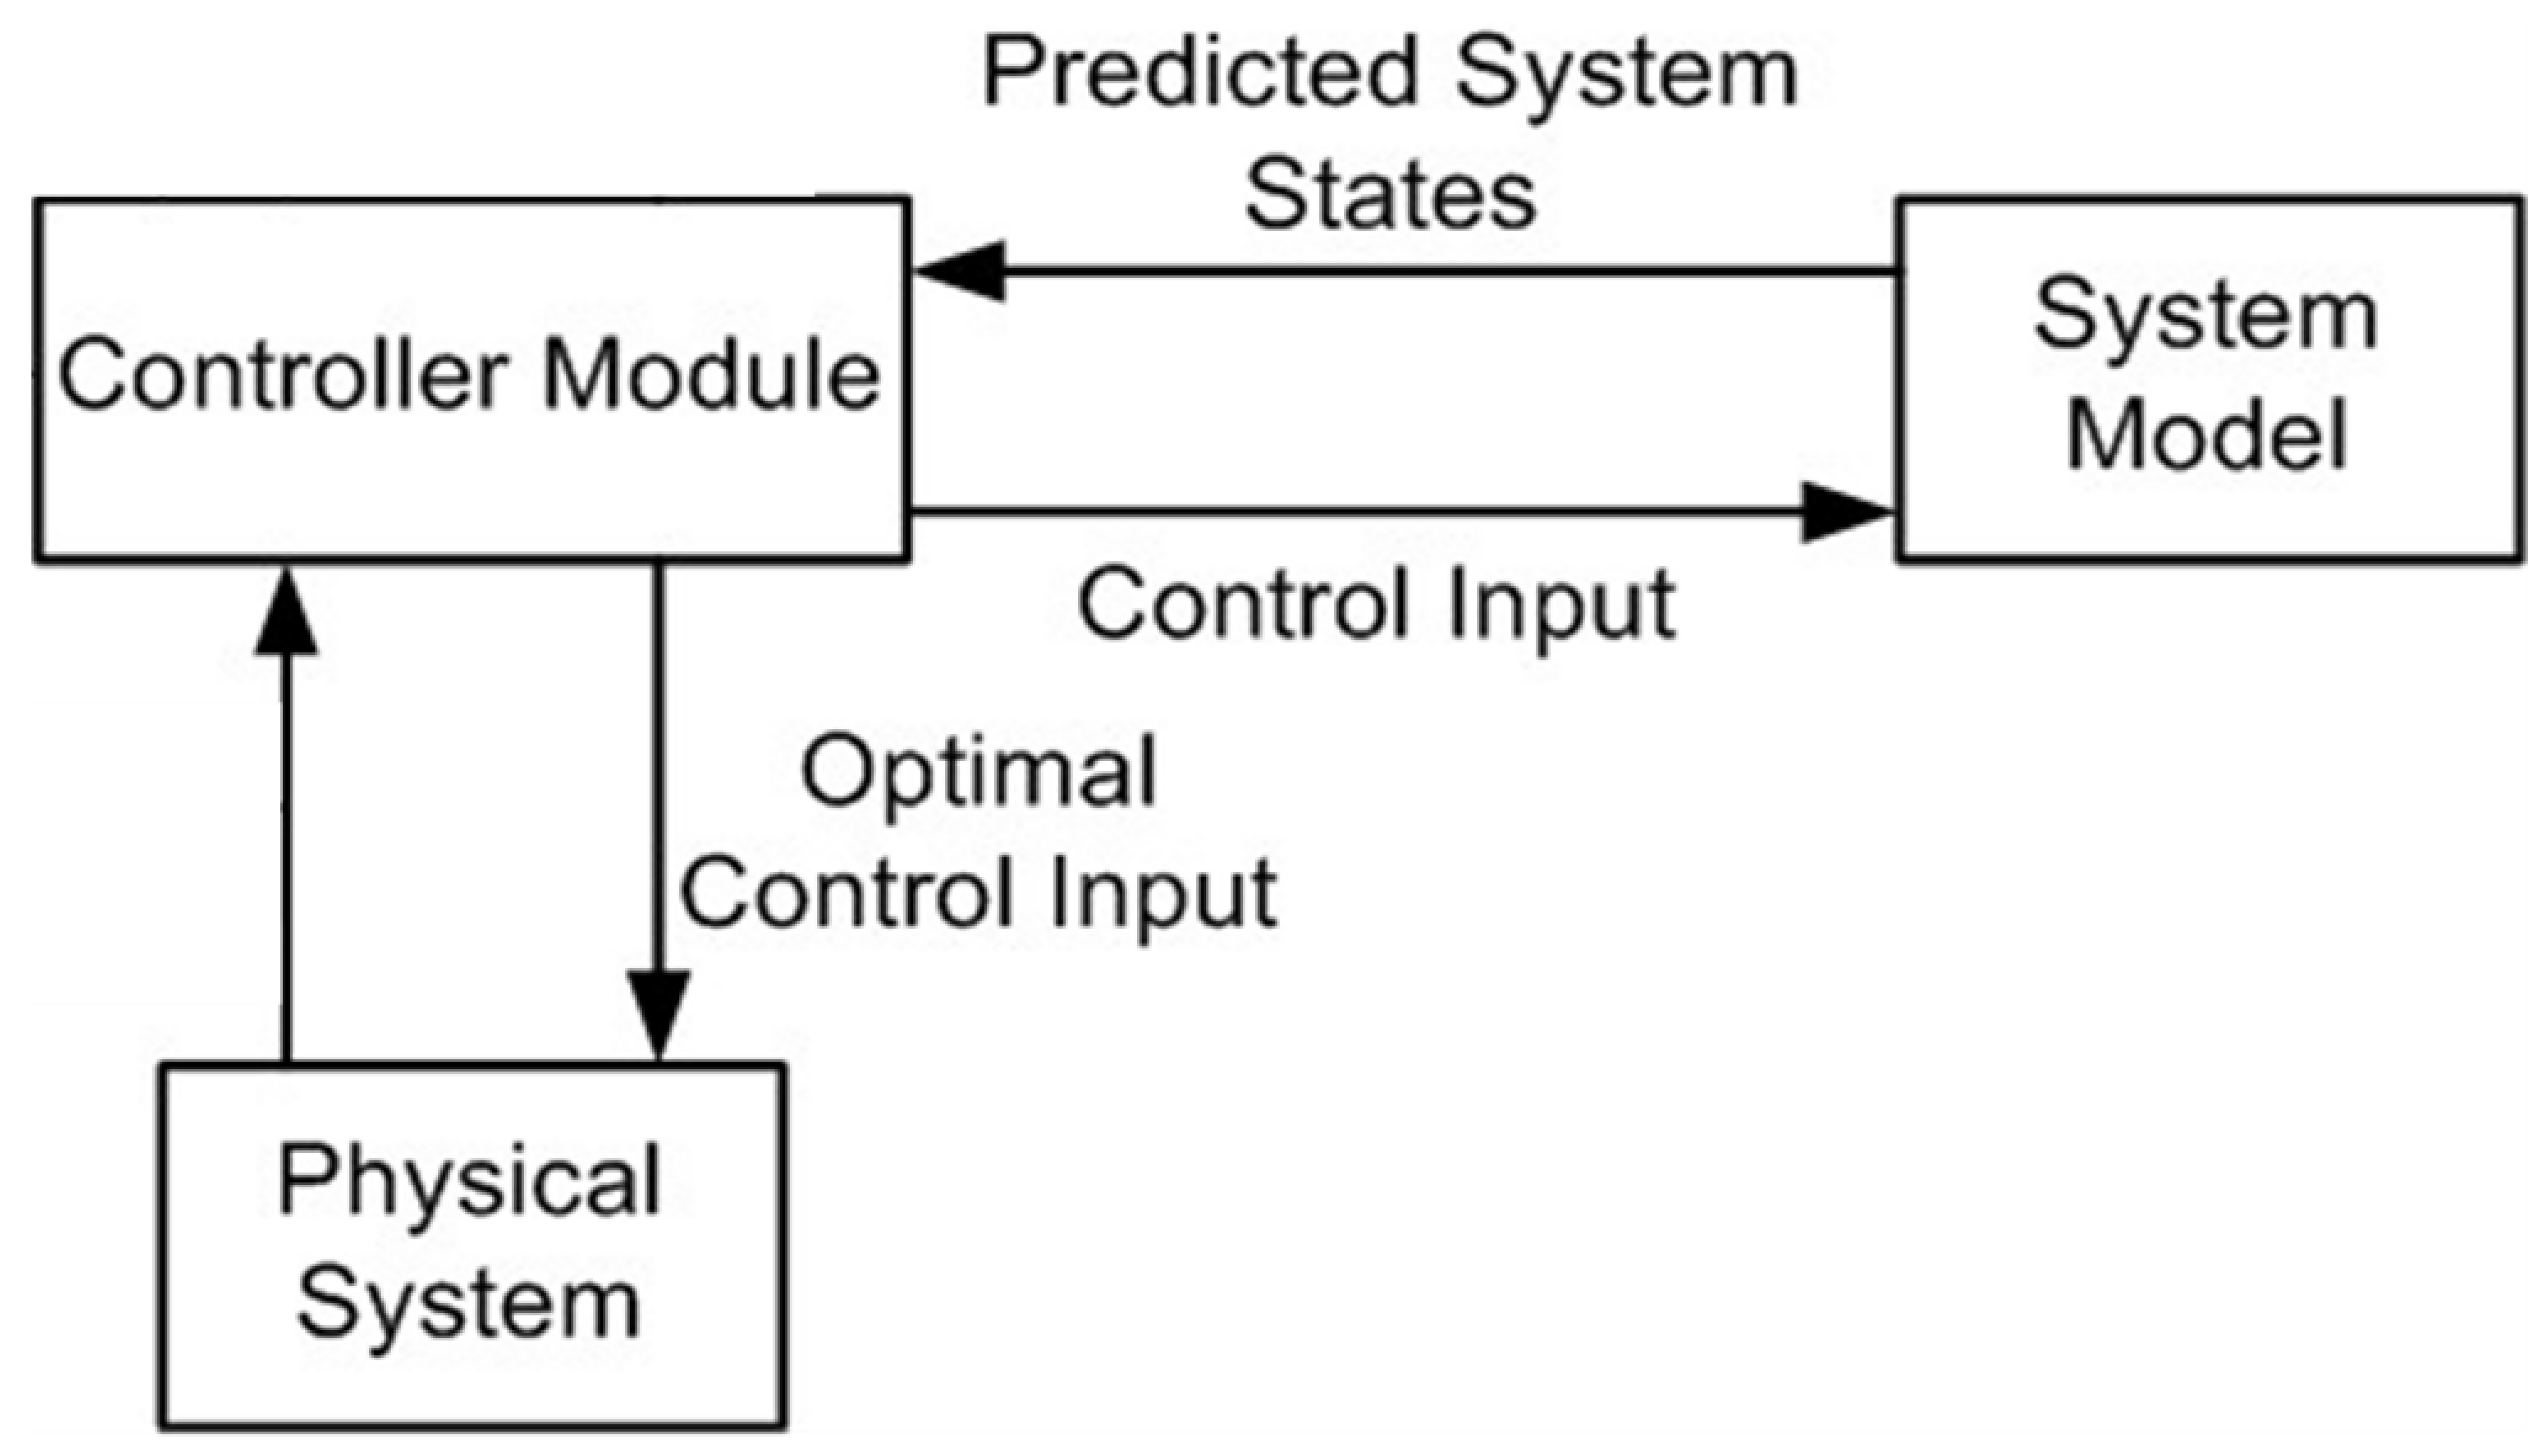 mpc tutorial model predictive control